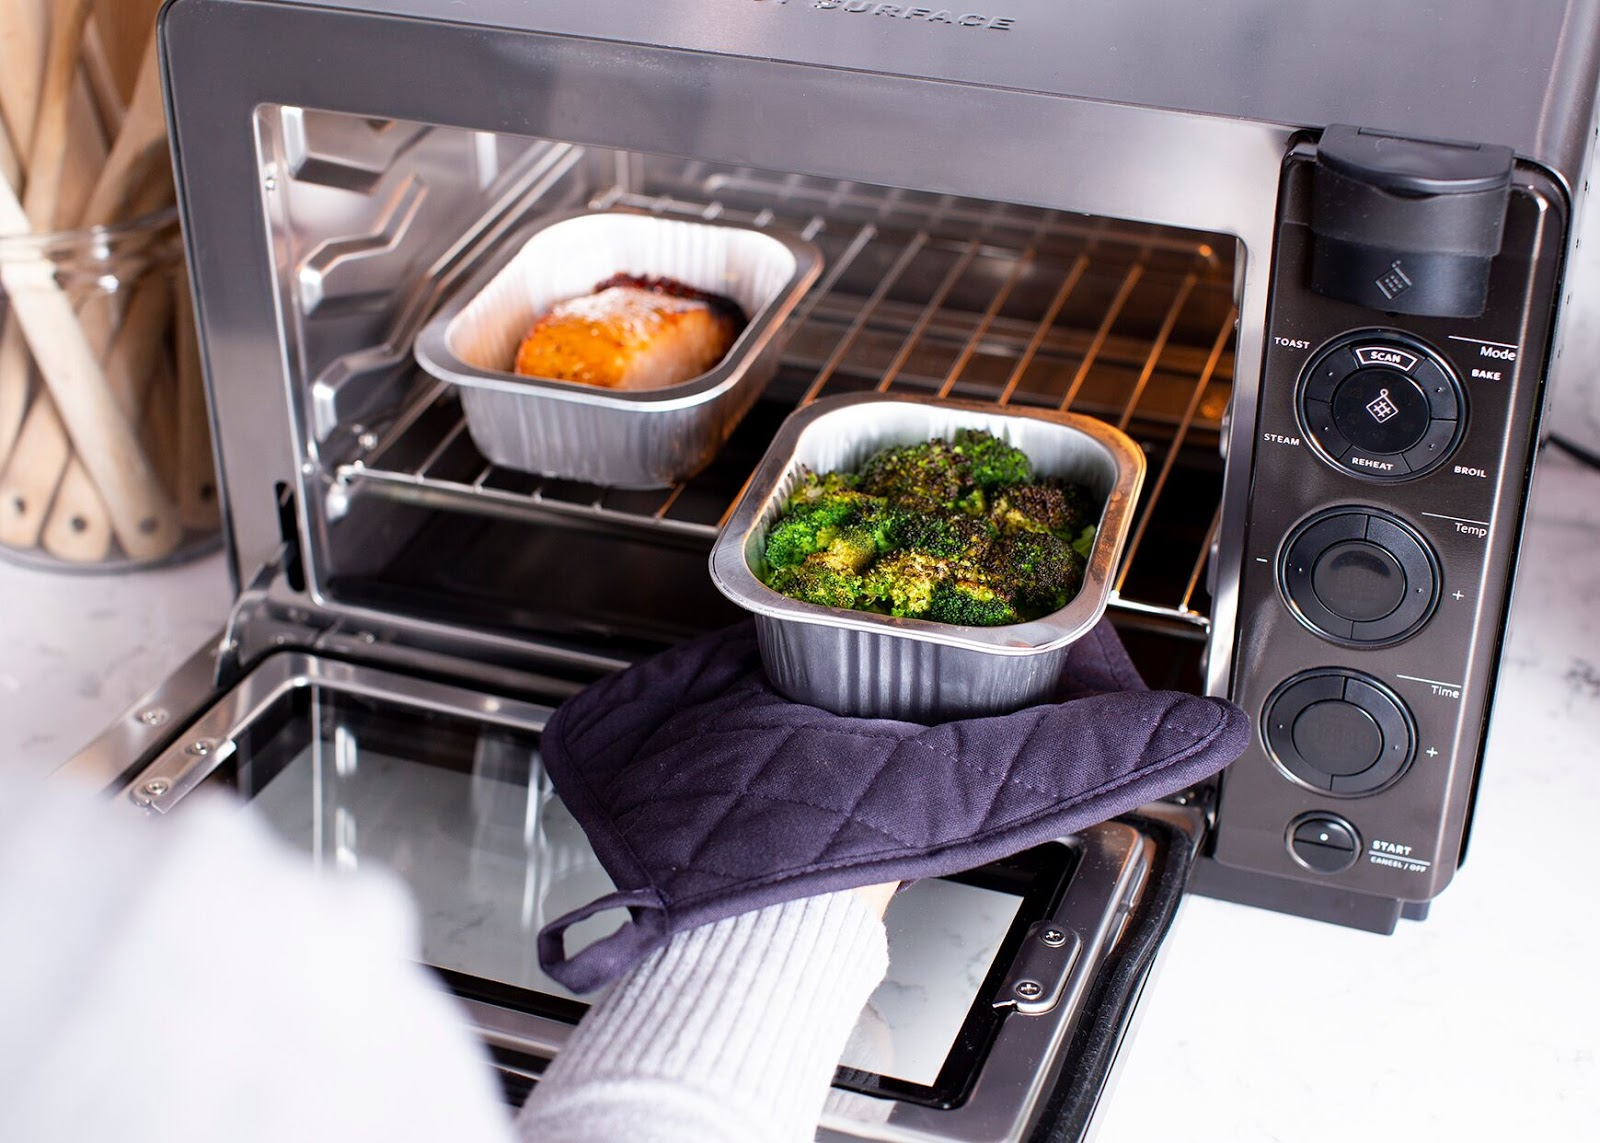 Countertop oven: A woman takes food out of the Tovala Steam Oven